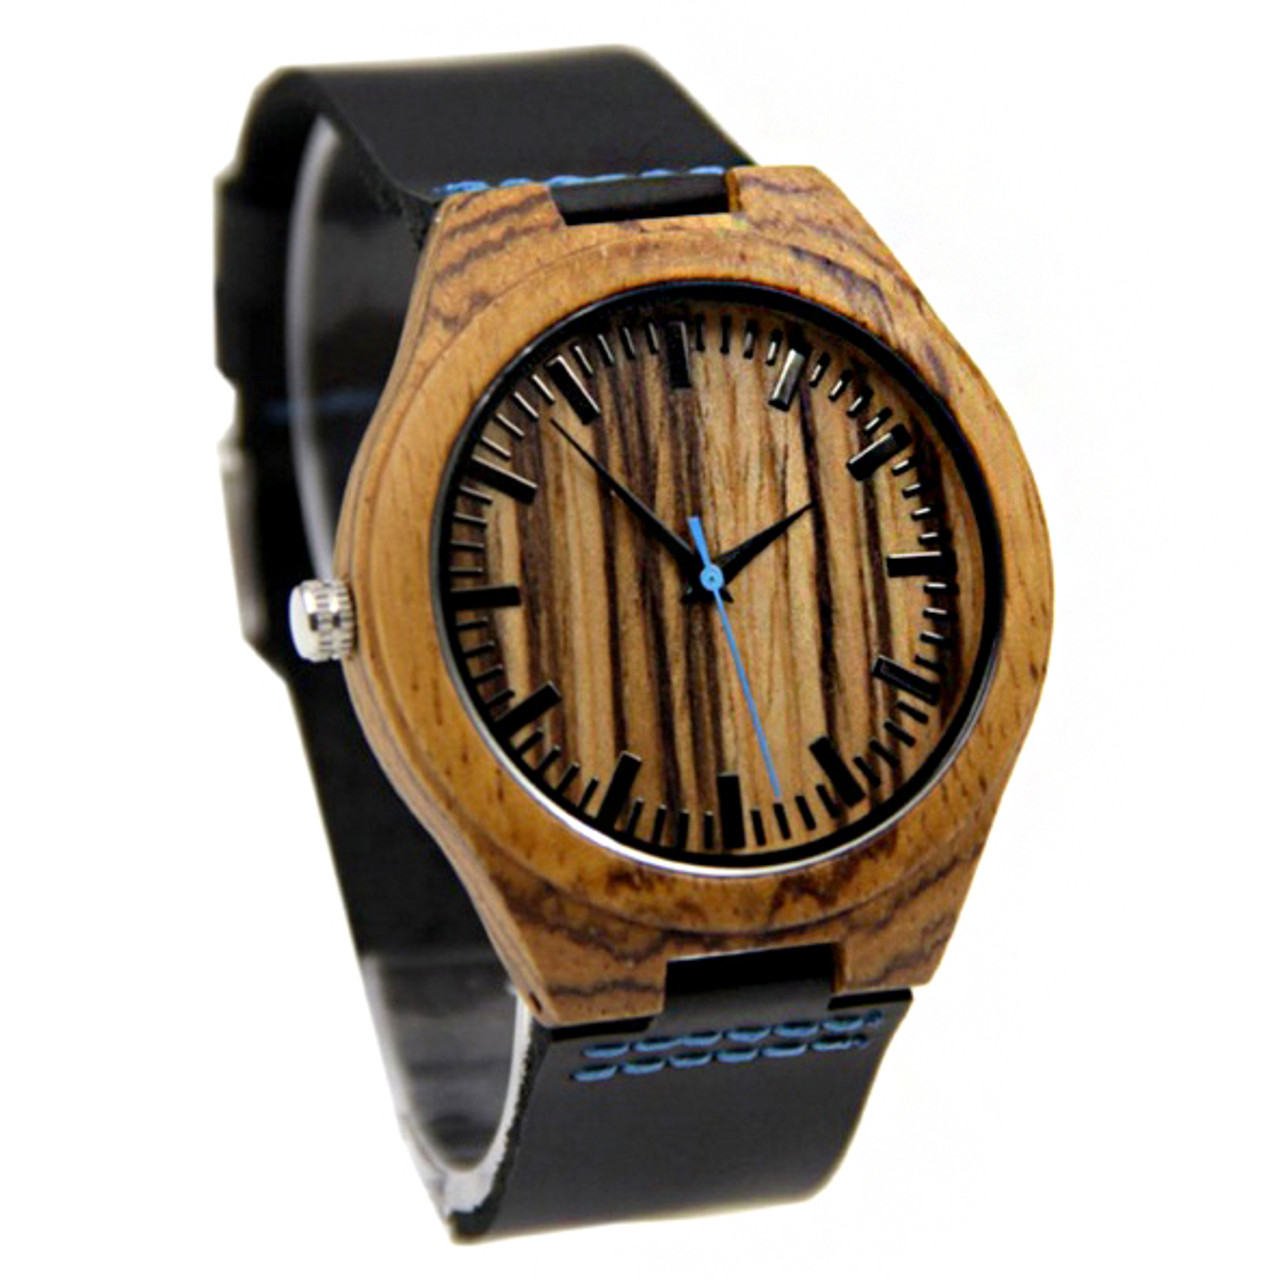 Grpn - Wood Engraved Watch W#70 - Ocean